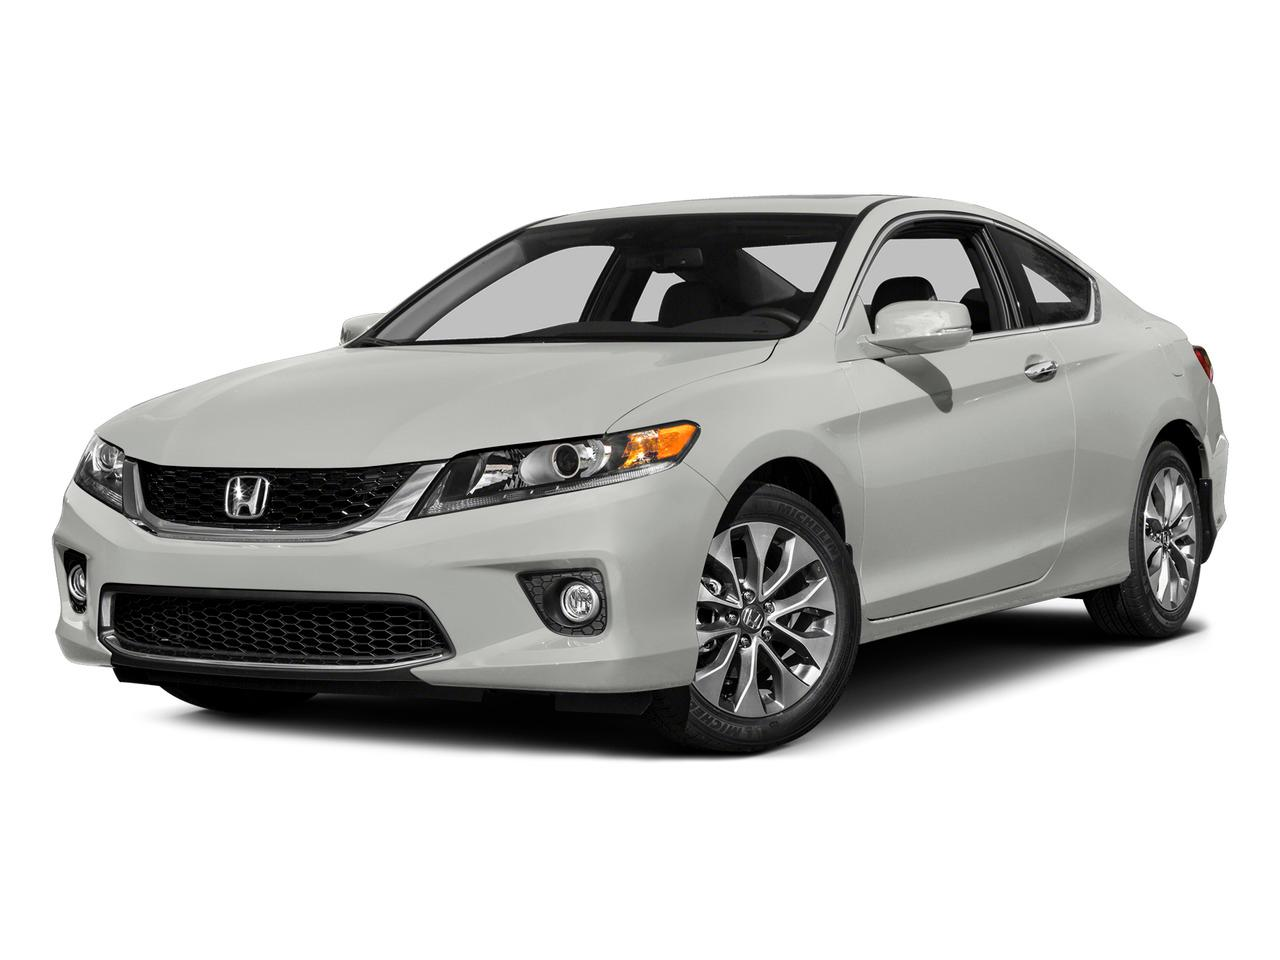 2015 Honda Accord Coupe Vehicle Photo in Laurel , MD 20724